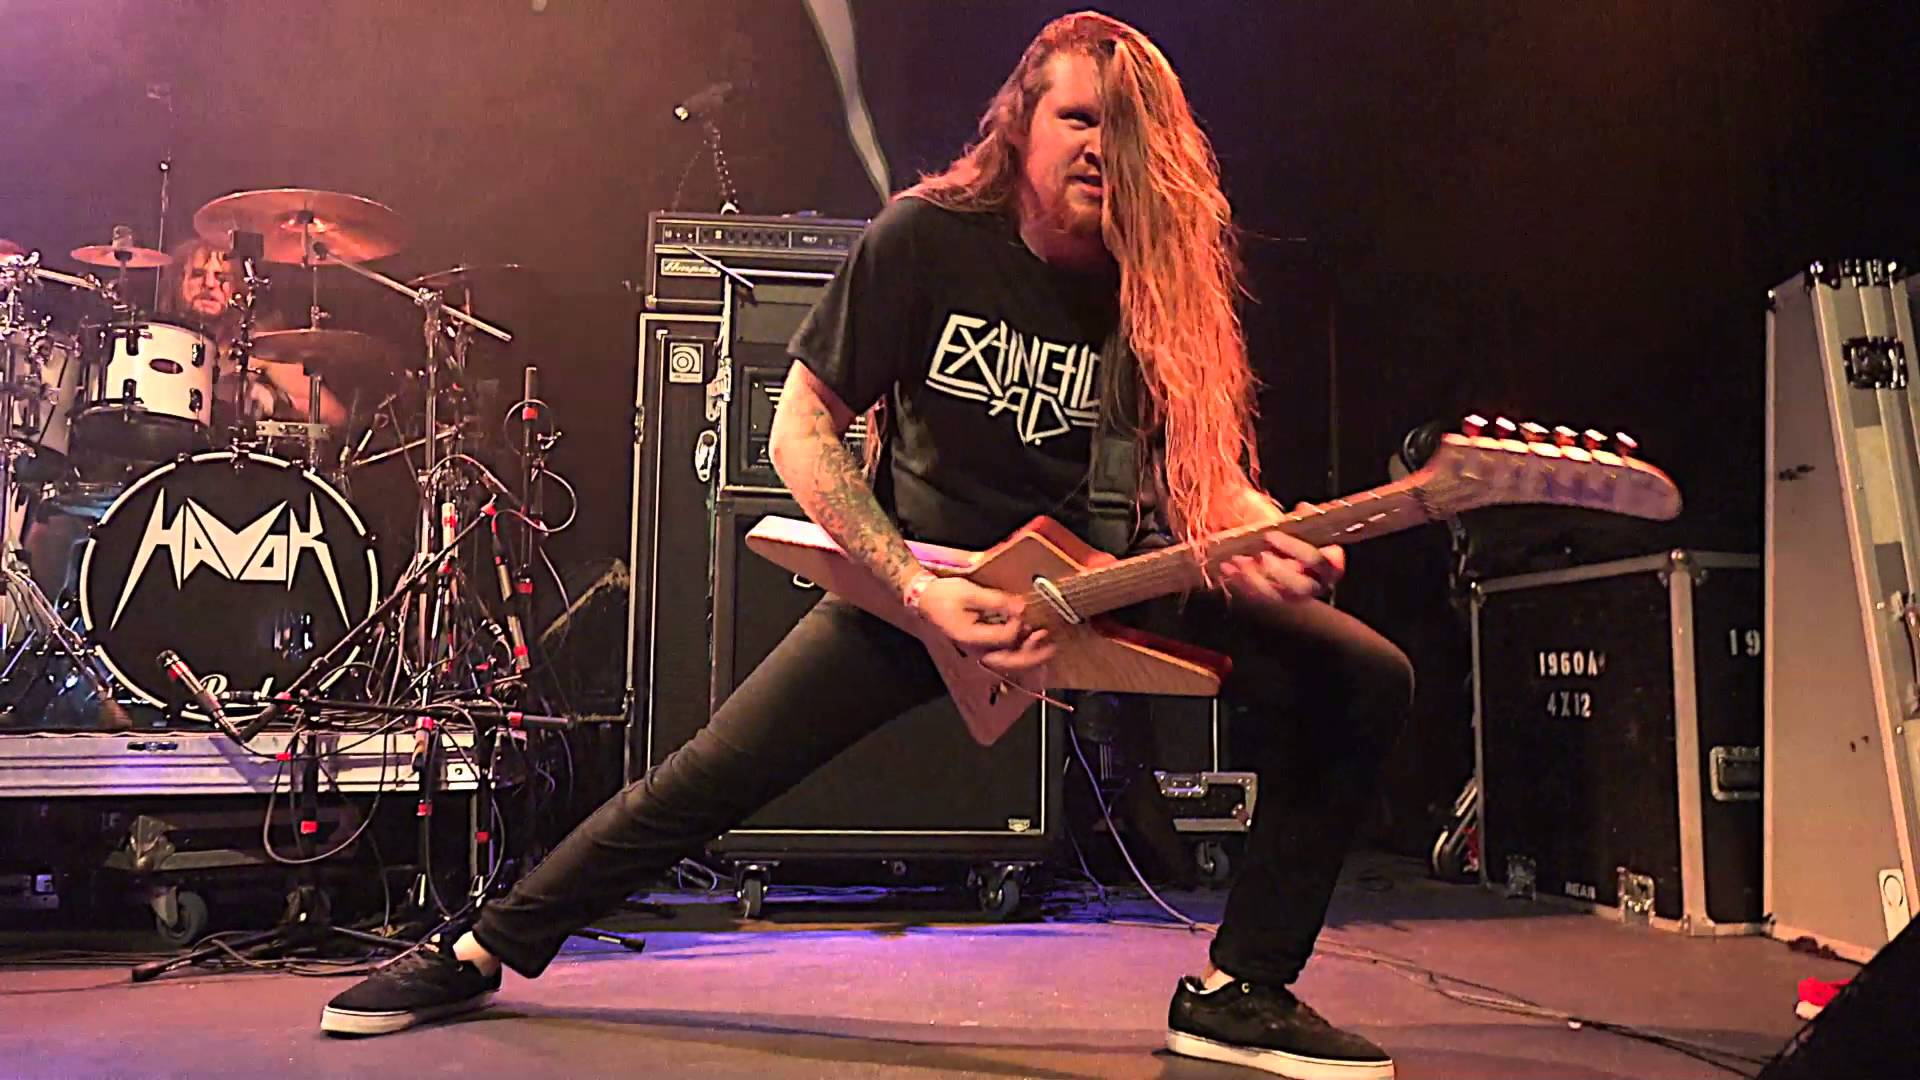 HAVOK - Claiming Certainty (Live At Gothic Theatre)